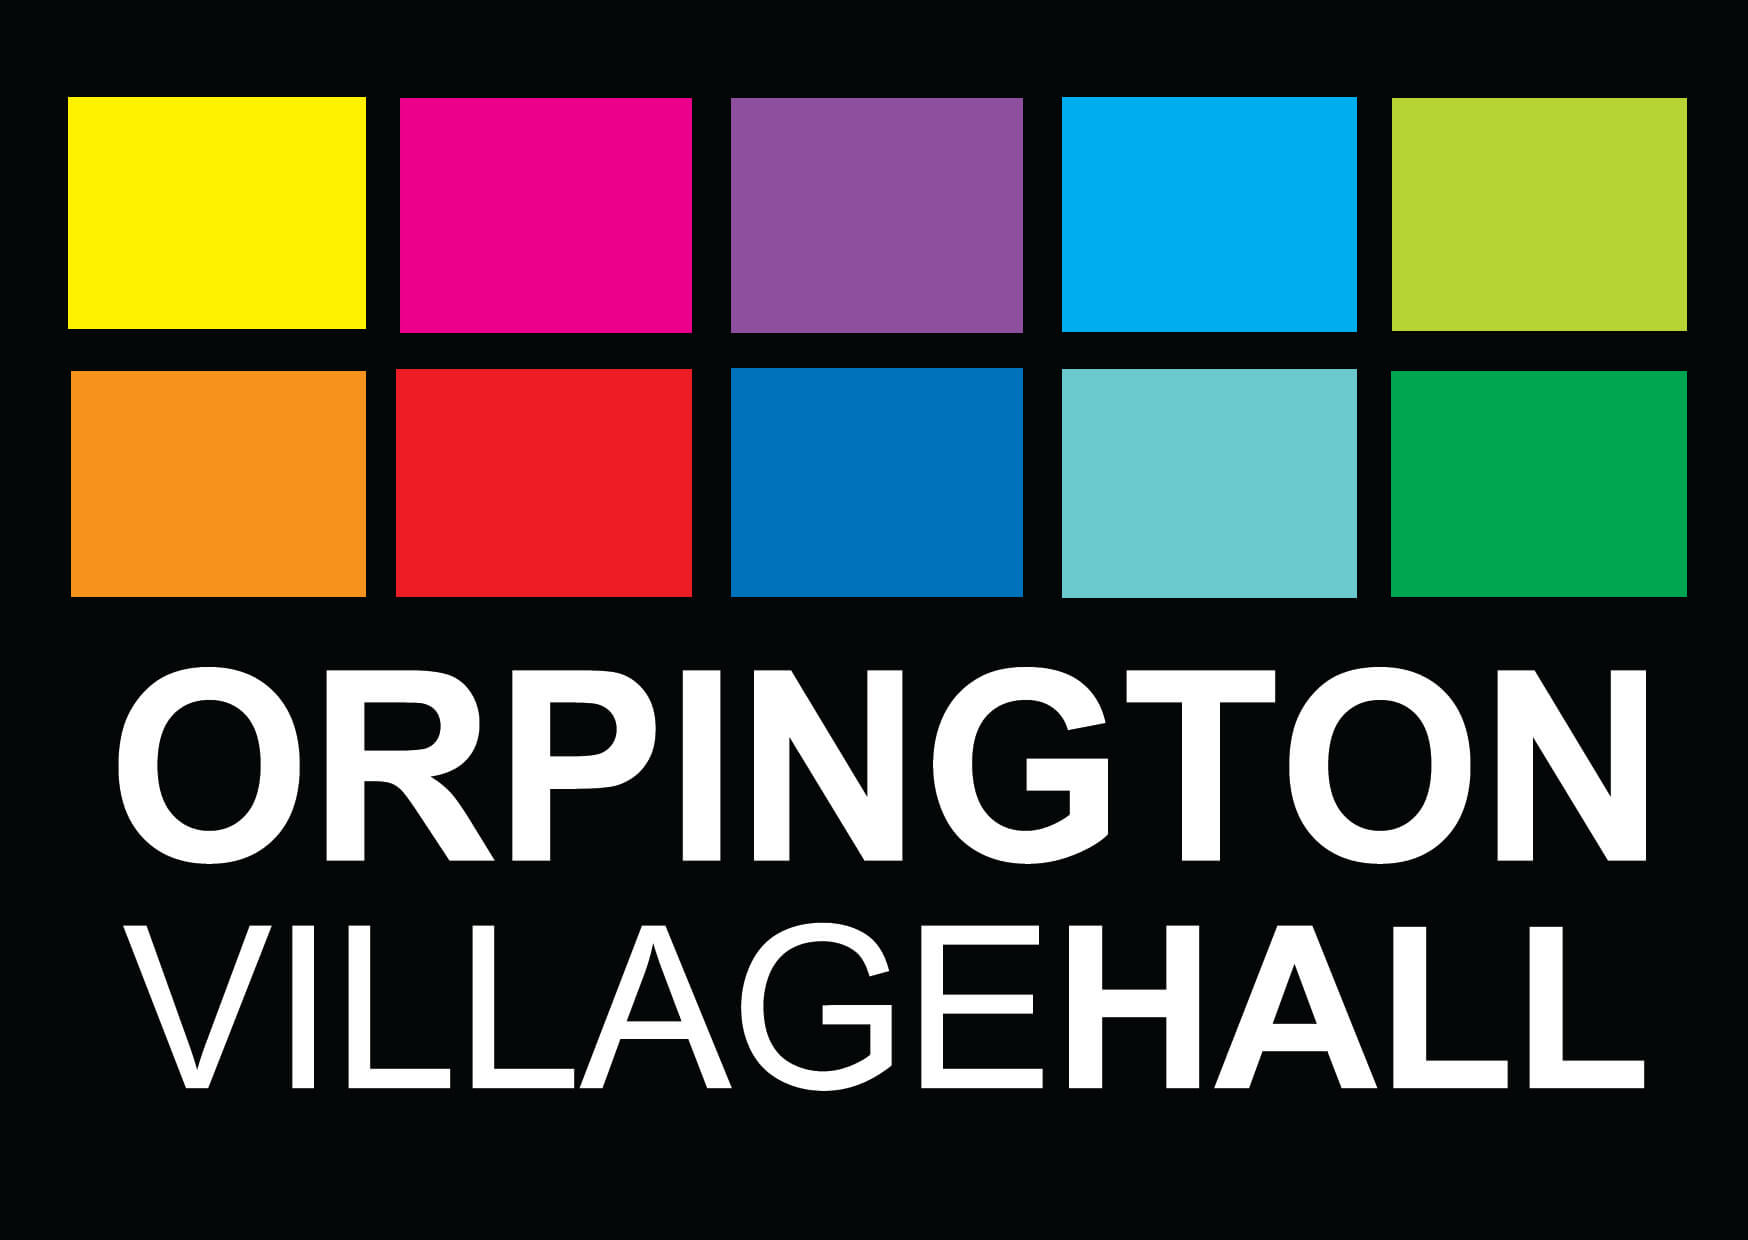 Orpington Village Hall multi coloured logo on black background